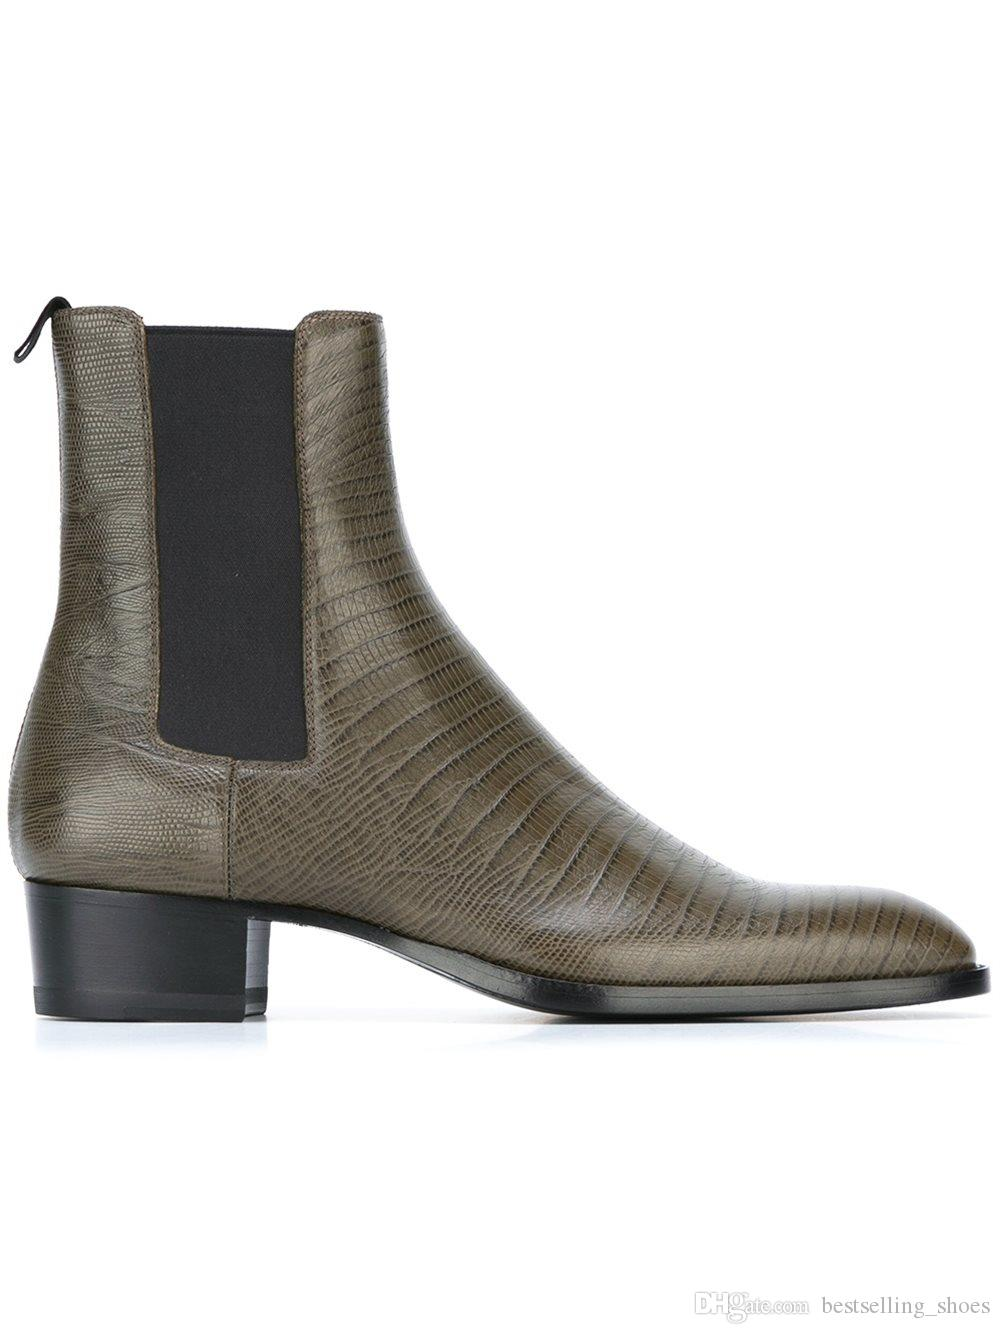 Fashion men's Martin boots leather high top boots 2017 Europe and American trend men tide personality men's Chelsea boots